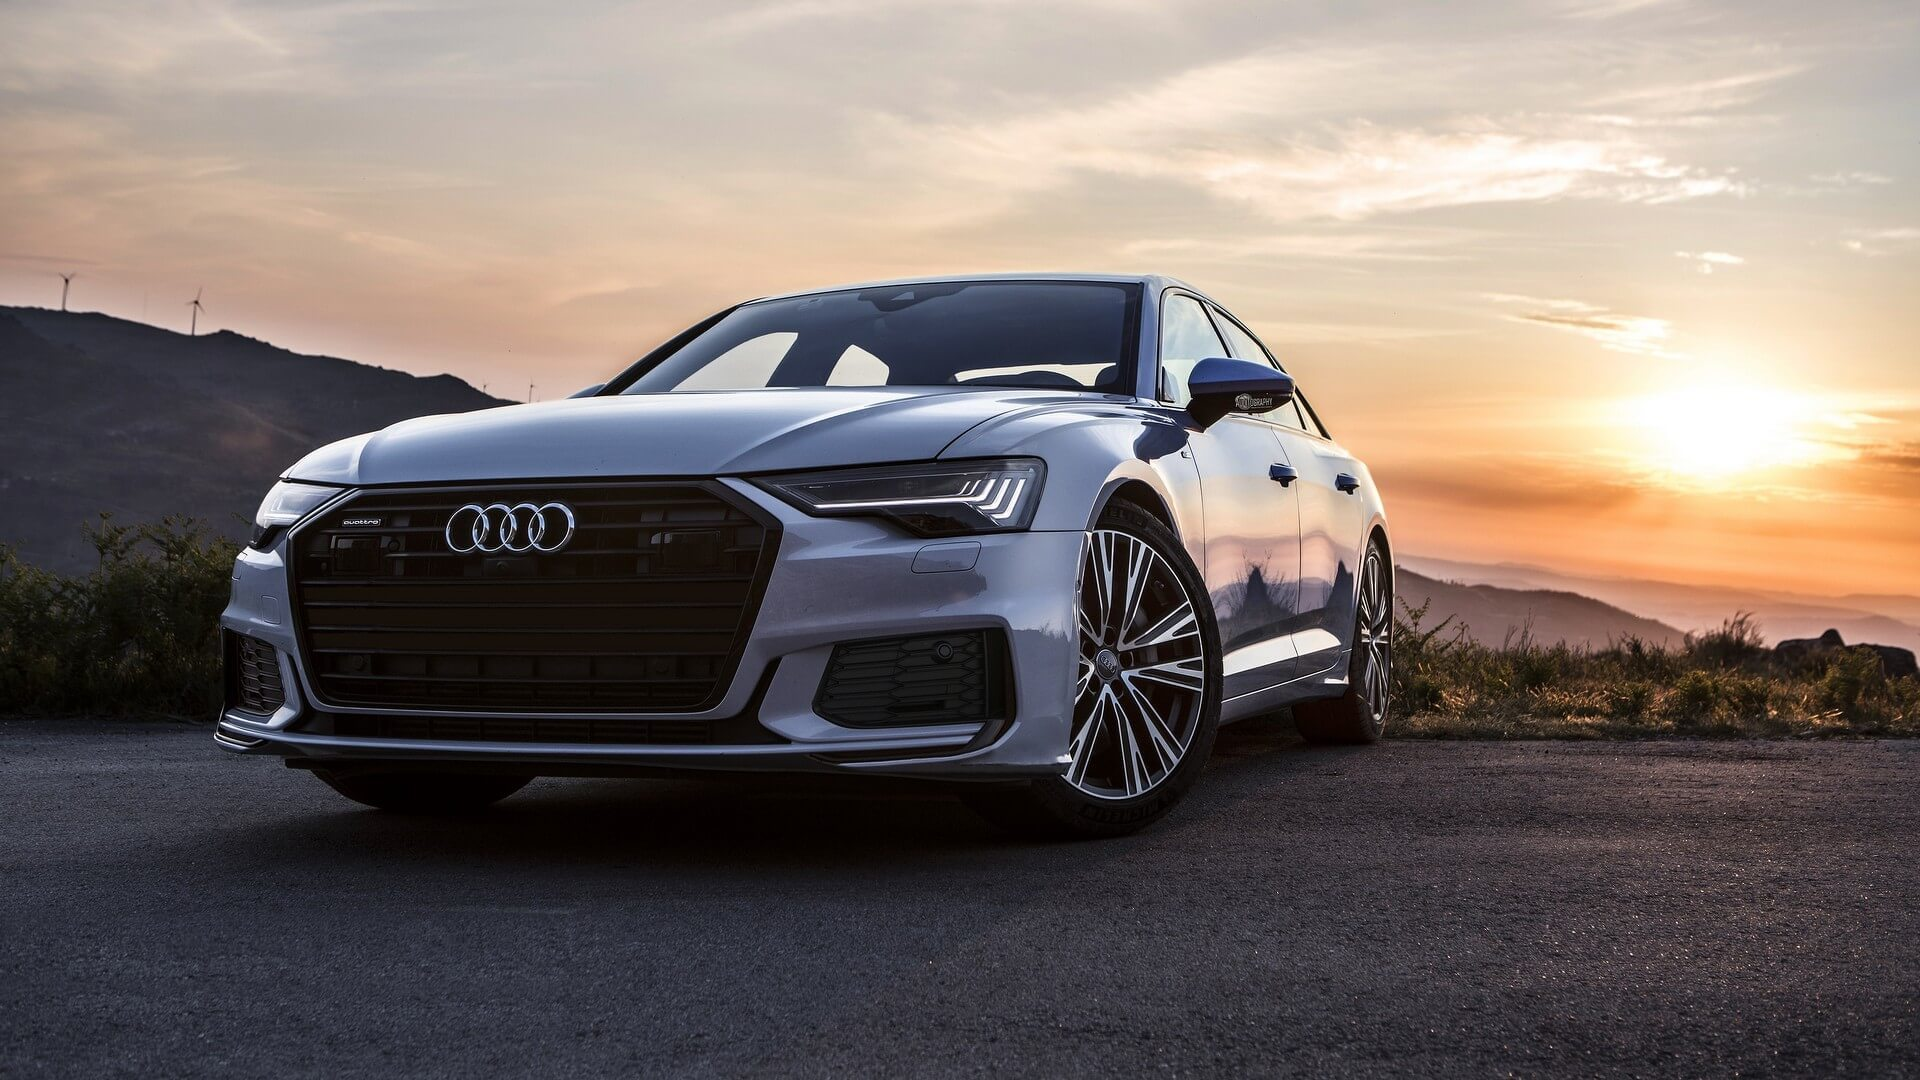 Audi A6 Quattro Audi A6 Beauty Shots Might Steer You Away From Buying A 5 Series